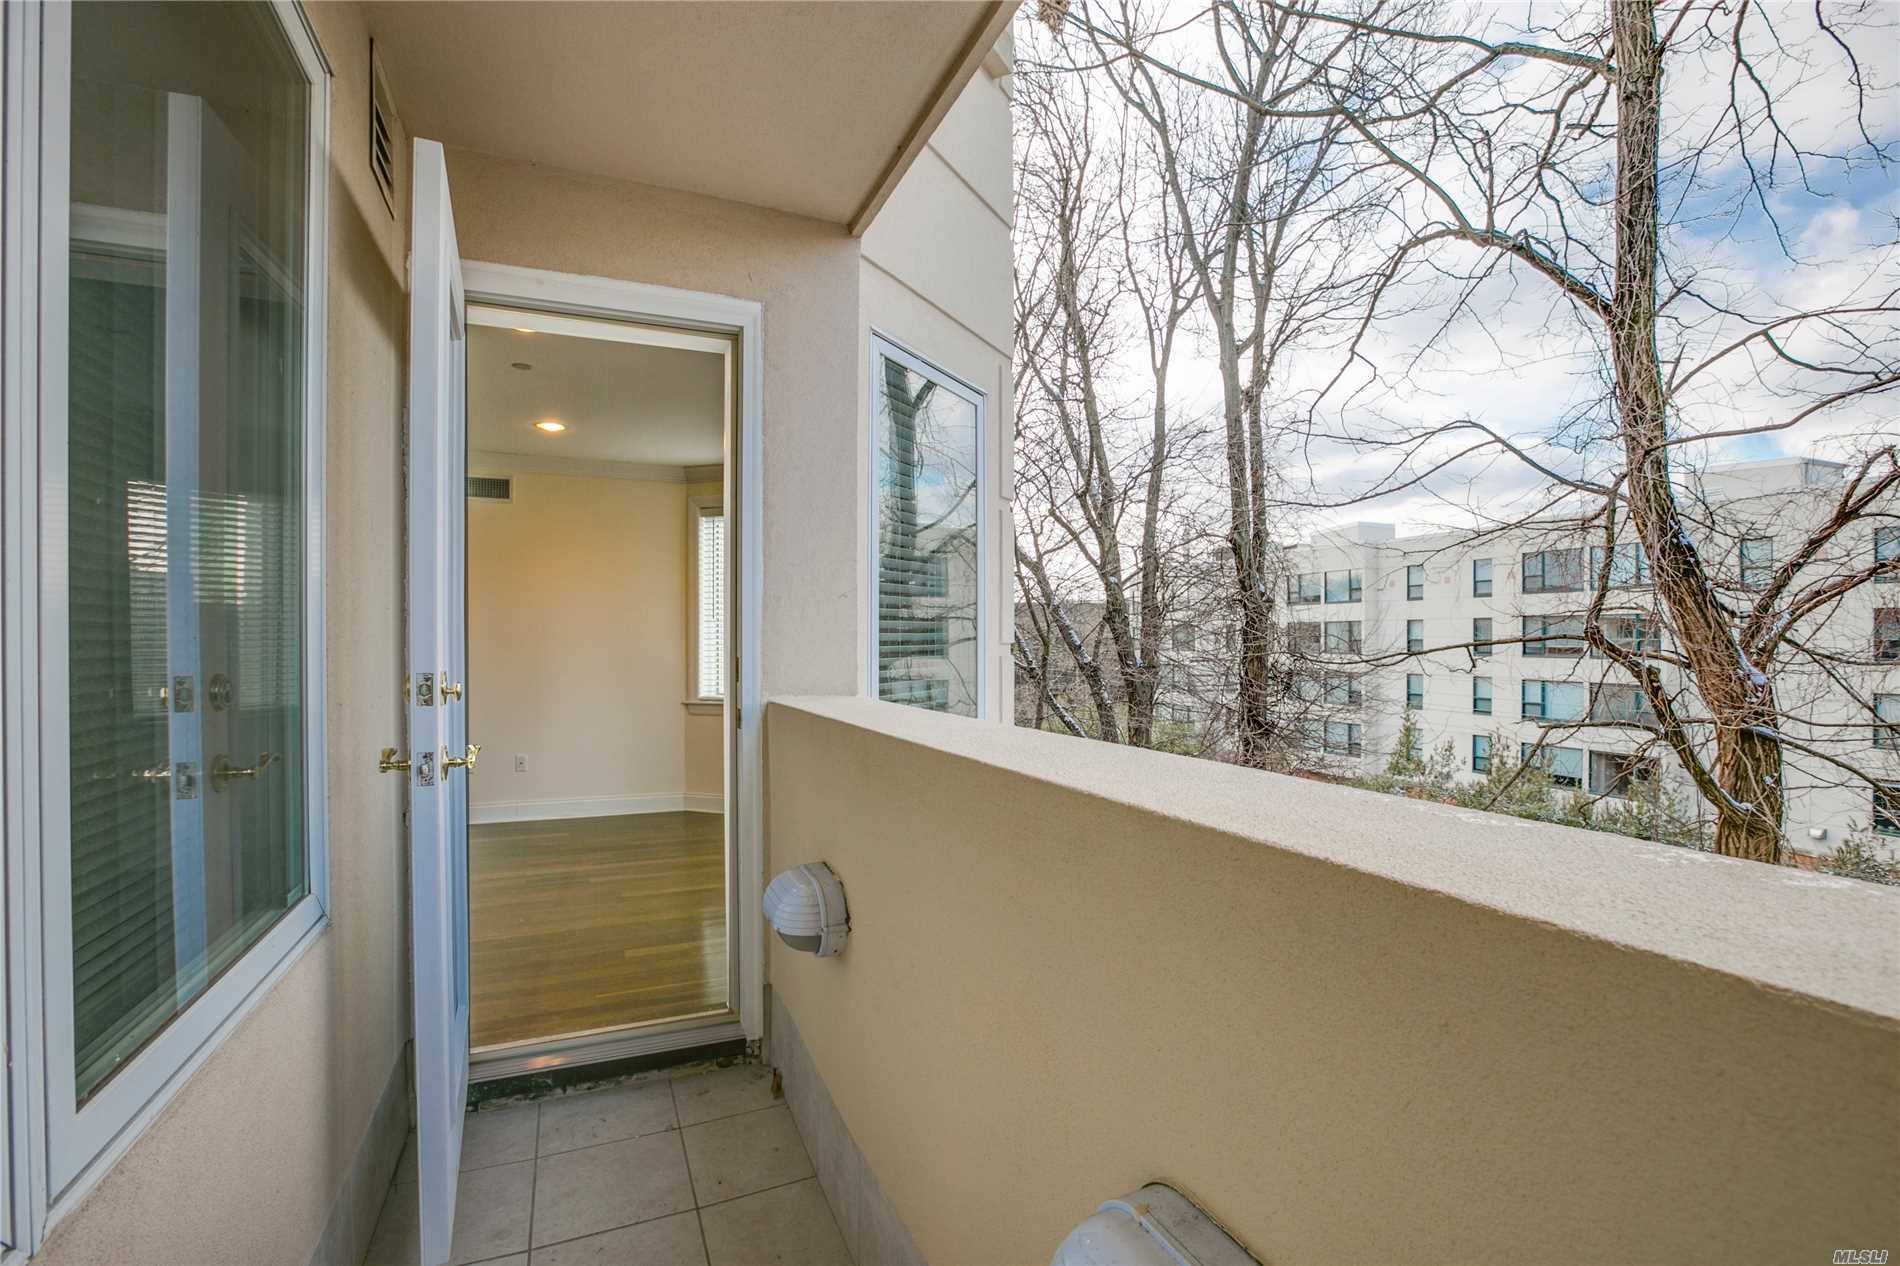 Great Neck. Front Facing Apartment Features 2 Bedrooms With 2.5 Baths With Southern Exposures And Terrace, Hardwood Floors Thru-Out, Combo Kitchen, In-Unit Washer/Dryer & Individual Thermostat. The Building Offers 24 Hour Doorman, Fitness Center And Community Room, And Dedicated Garage Parking!